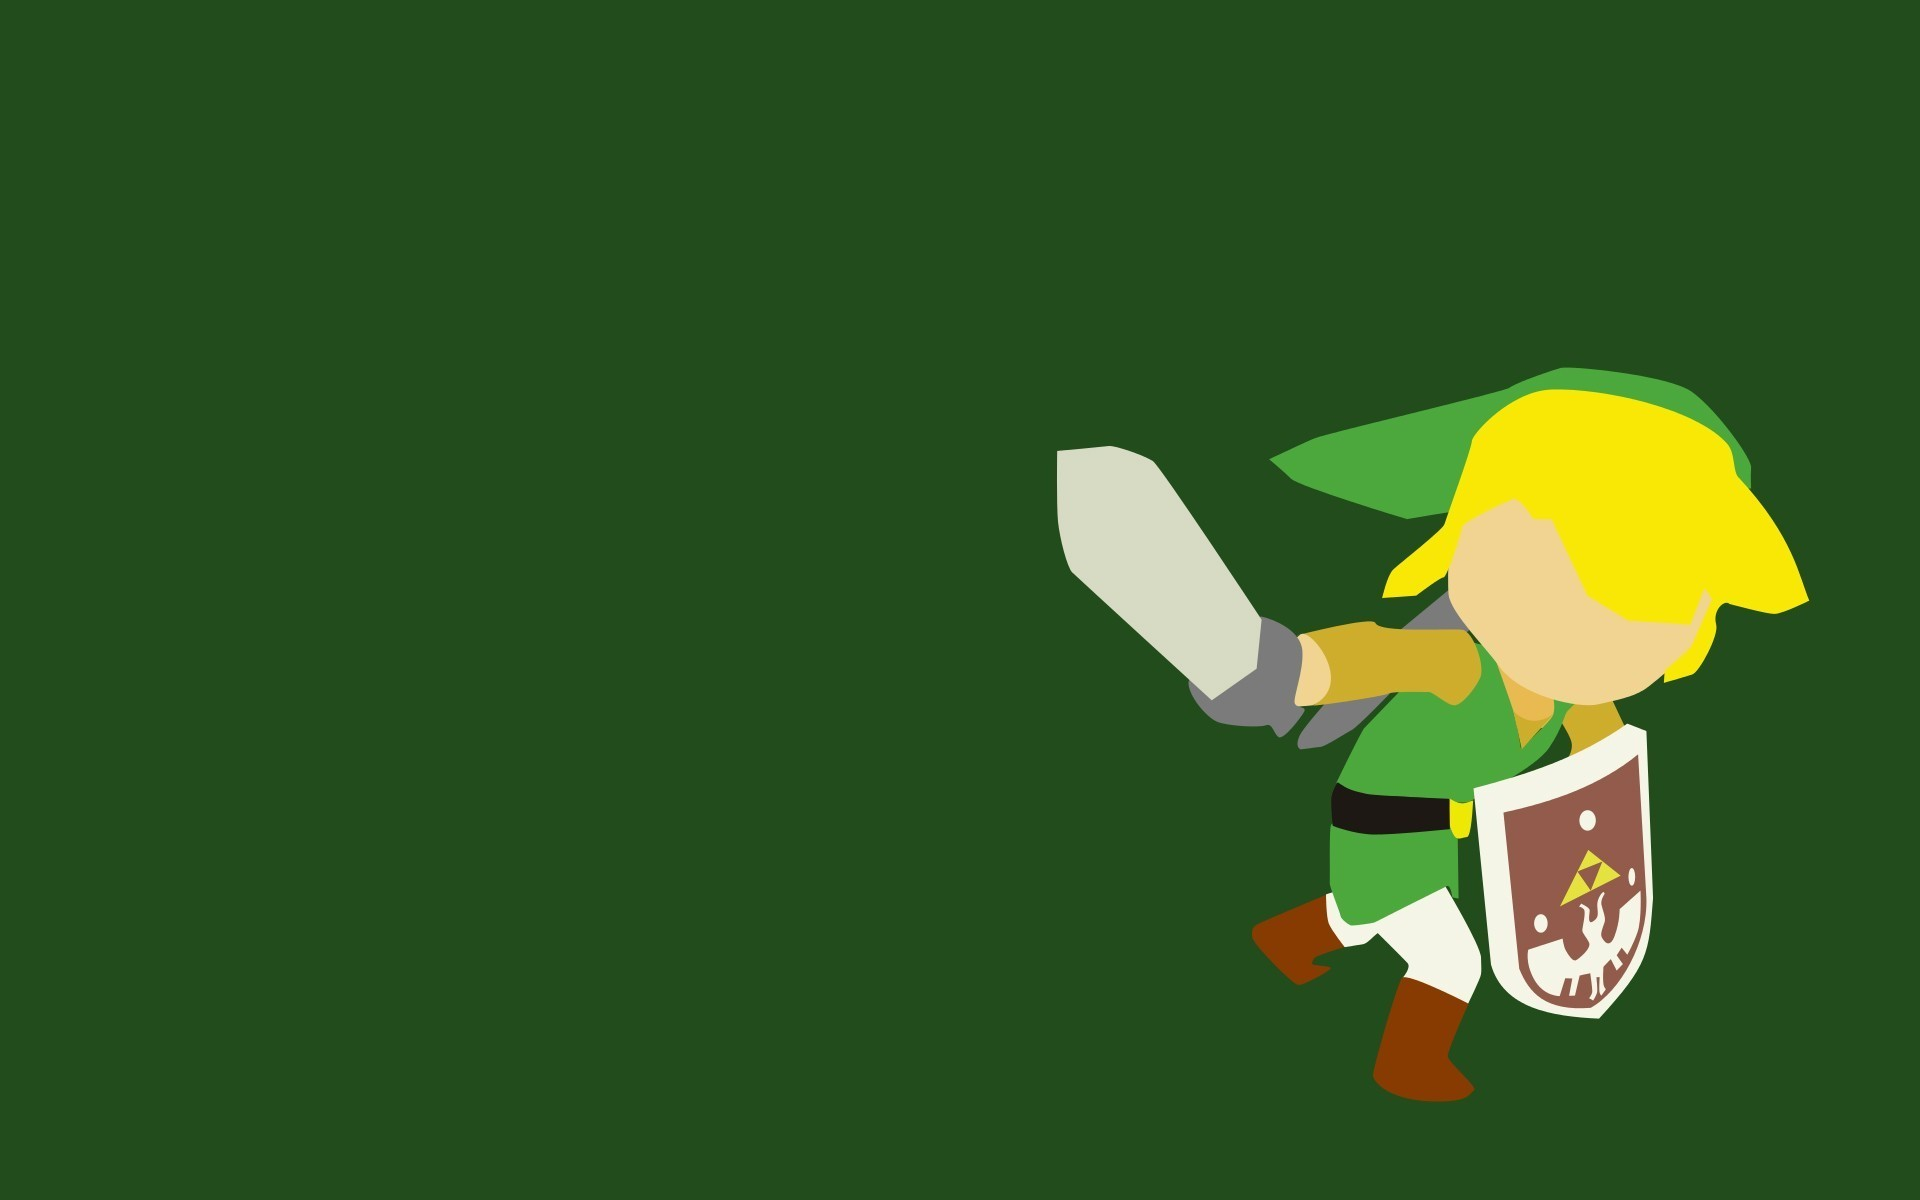 1920x1200 Link, The Legend Of Zelda, Minimalism, Video Games Wallpapers HD / Desktop  and Mobile Backgrounds